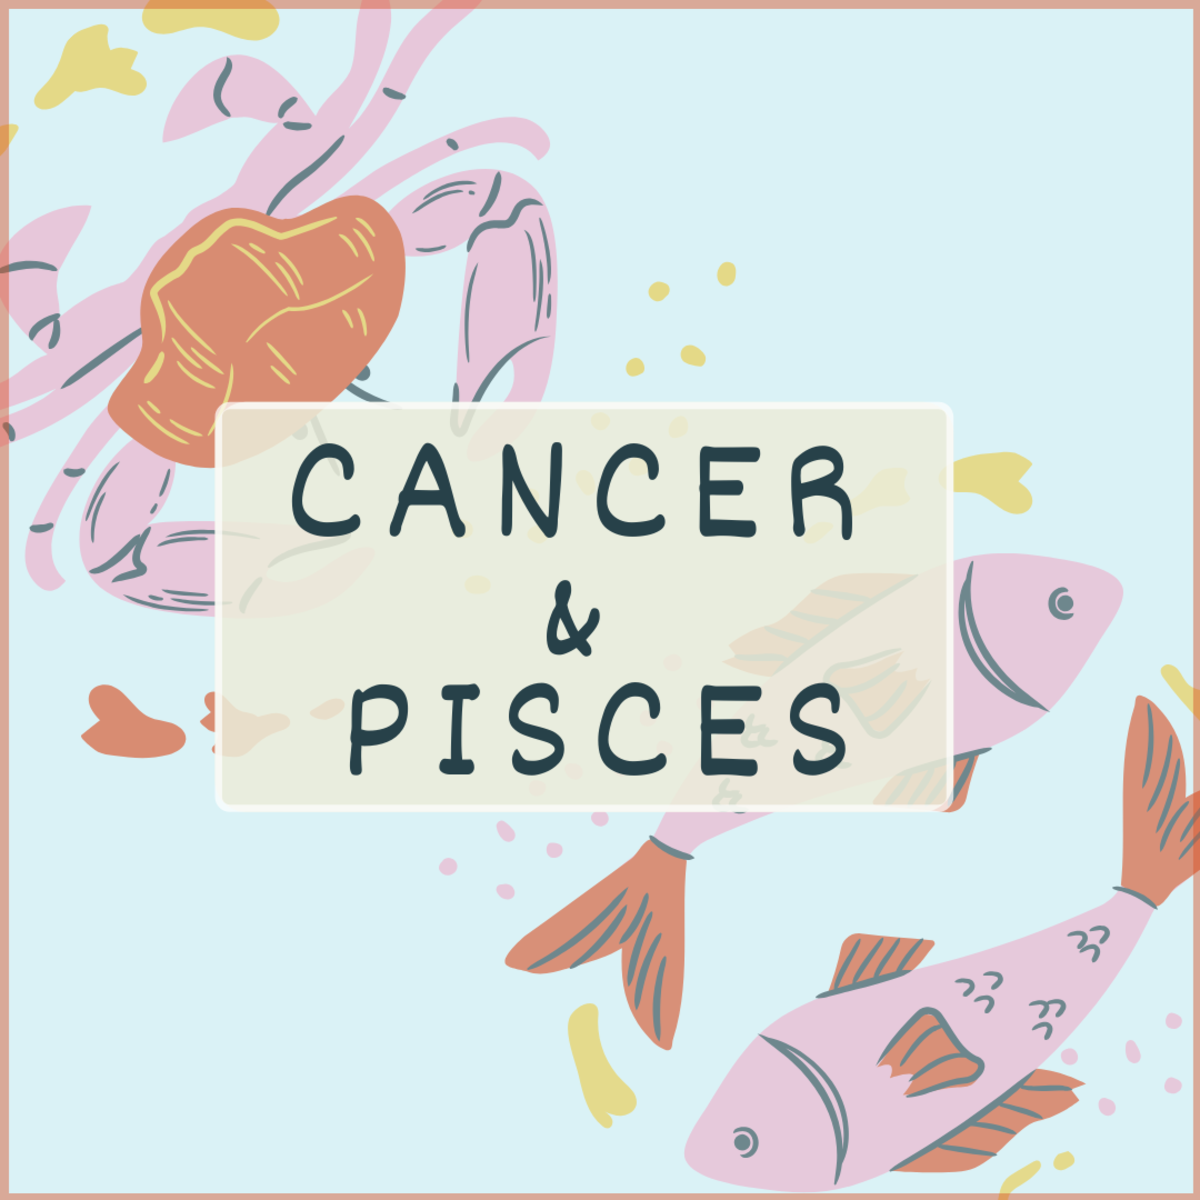 Pisces and Cancer are a natural match, but what exactly makes these two water signs so deeply compatible?